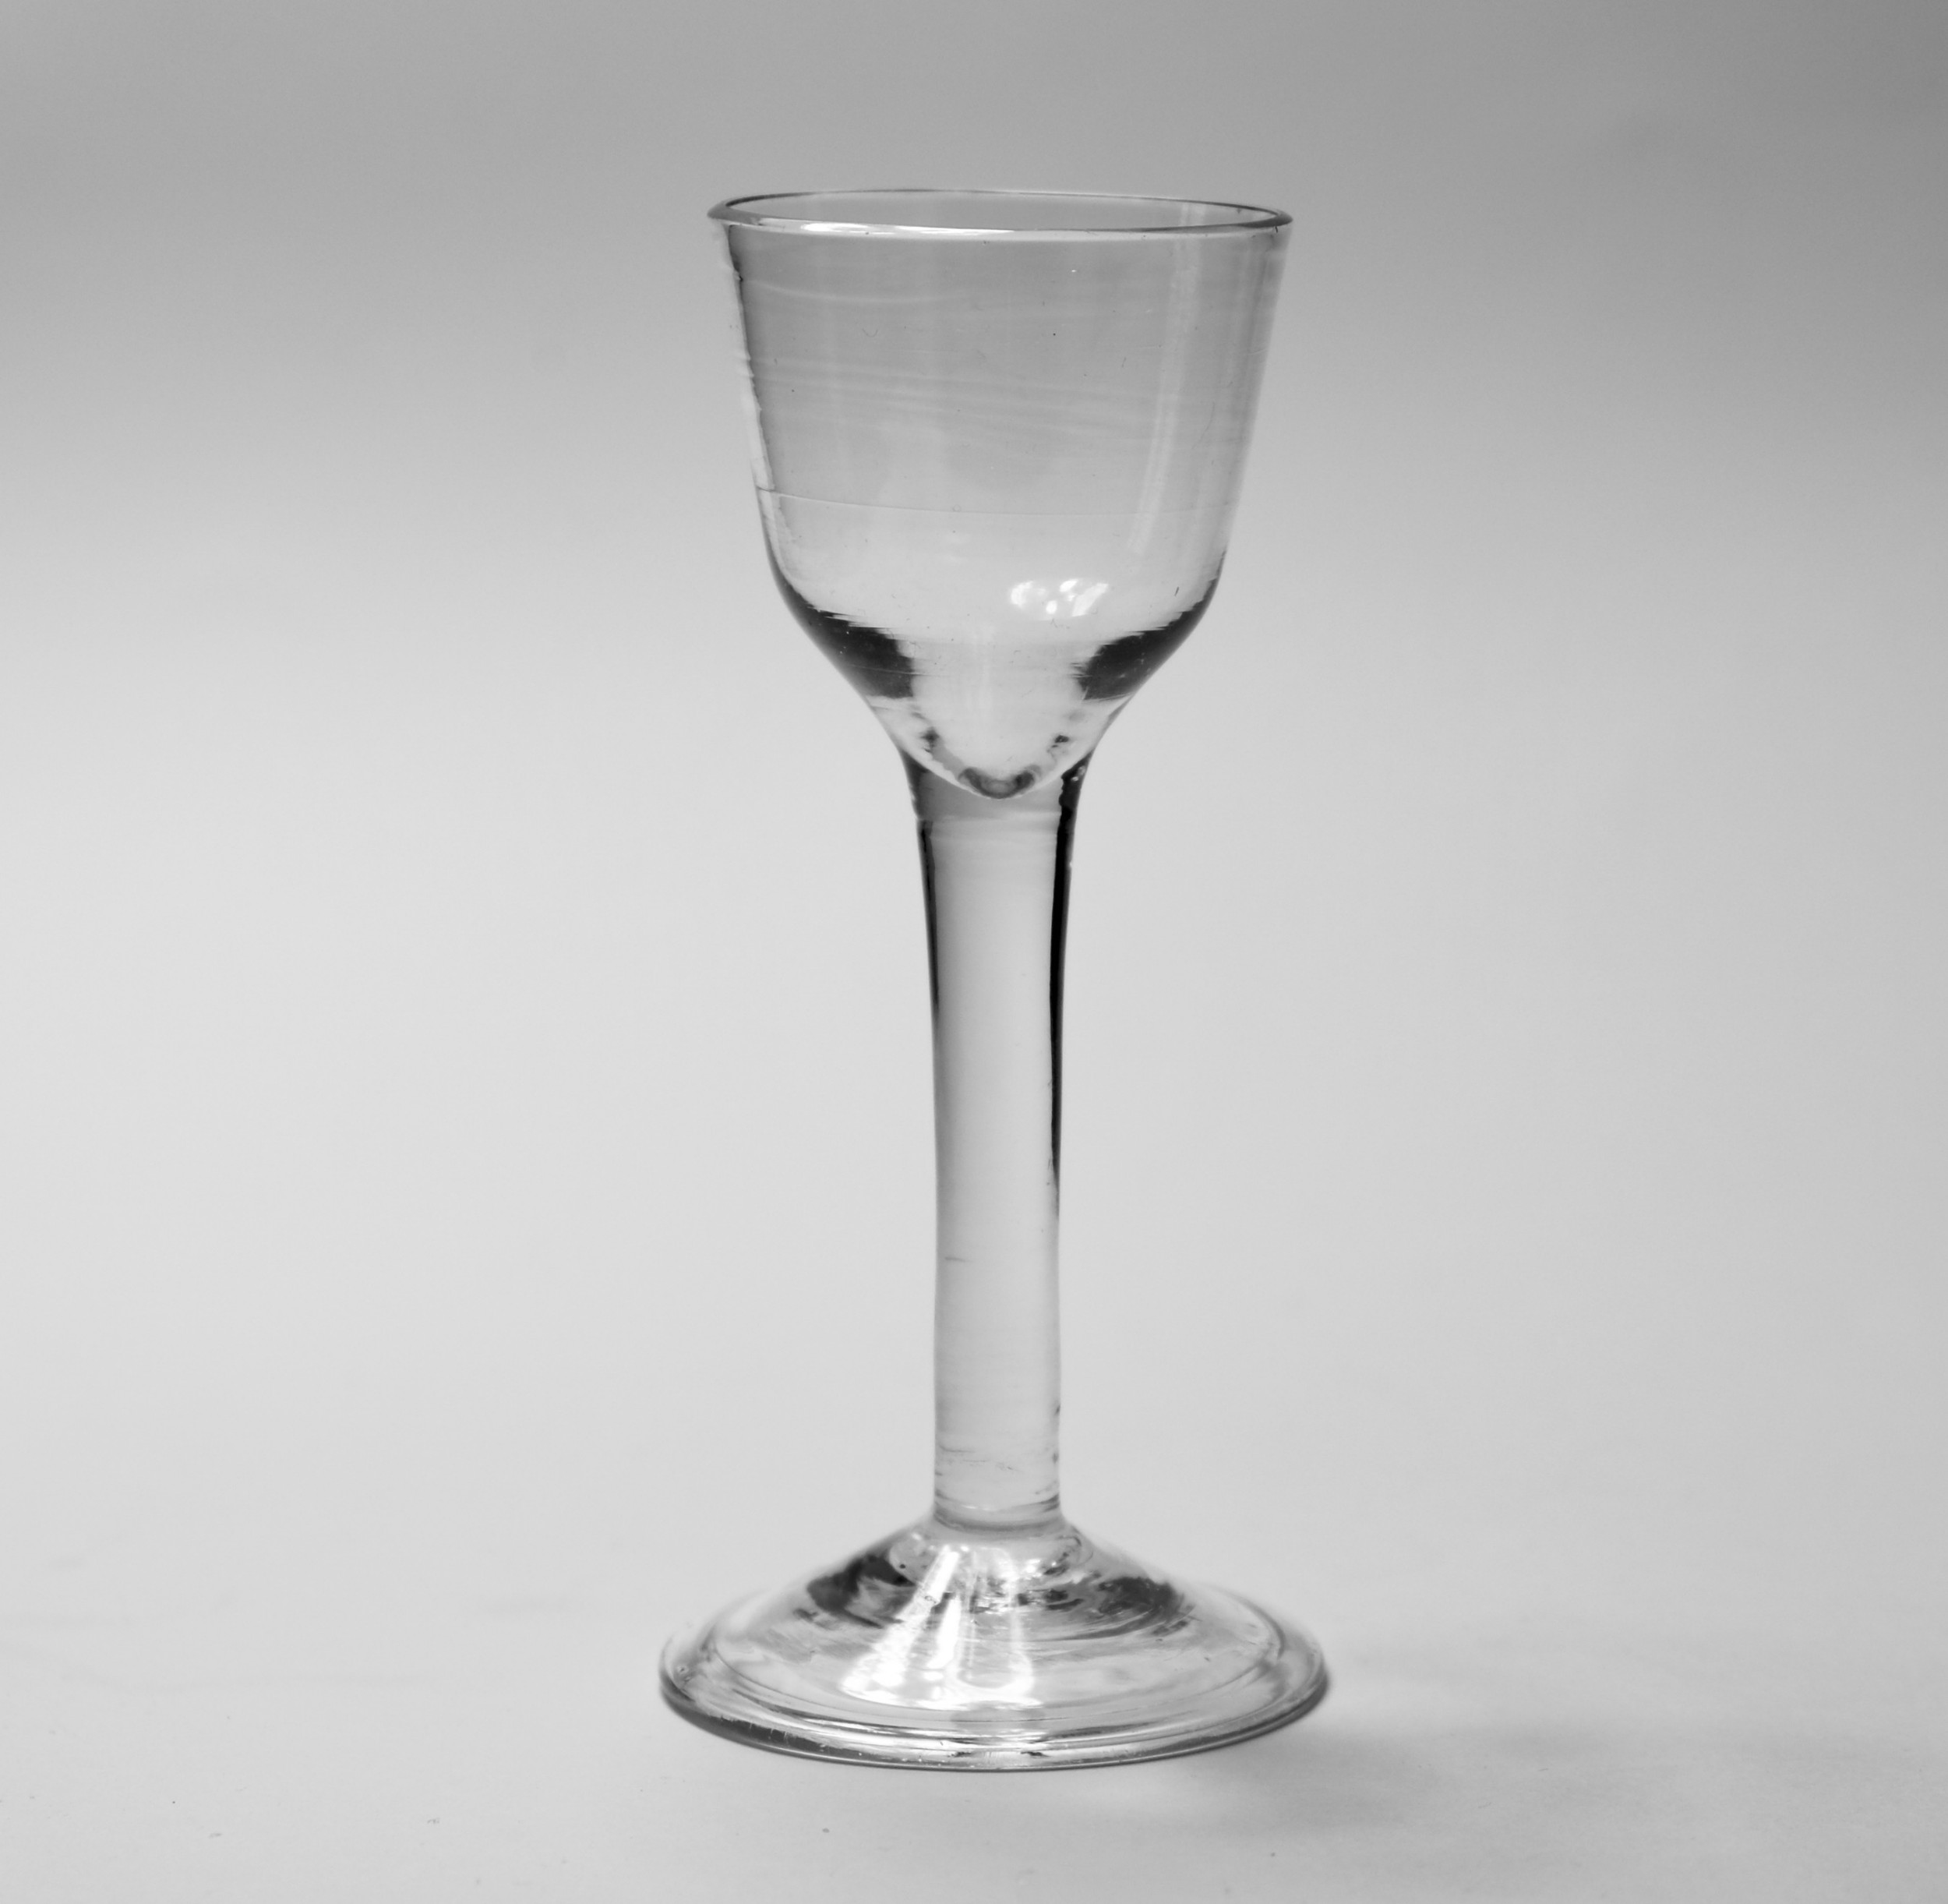 plain stem ogee bowl wine glass english c1760